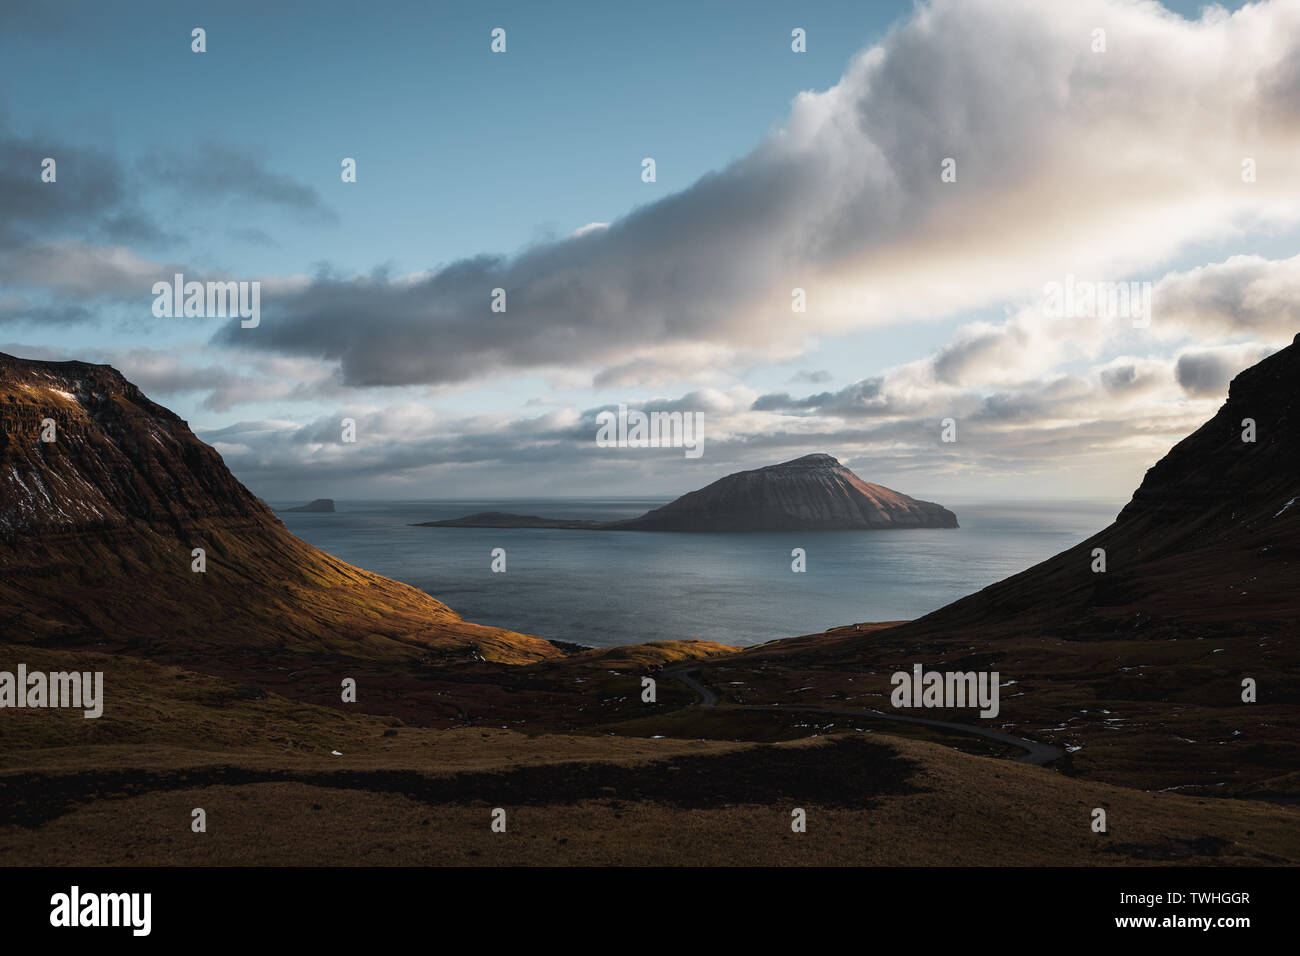 Evening views onto the Faroese island Koltur with spectacular clouds, low sun and blue sky in a dramatic valley with mountain range (Faroe Islands) - Stock Image